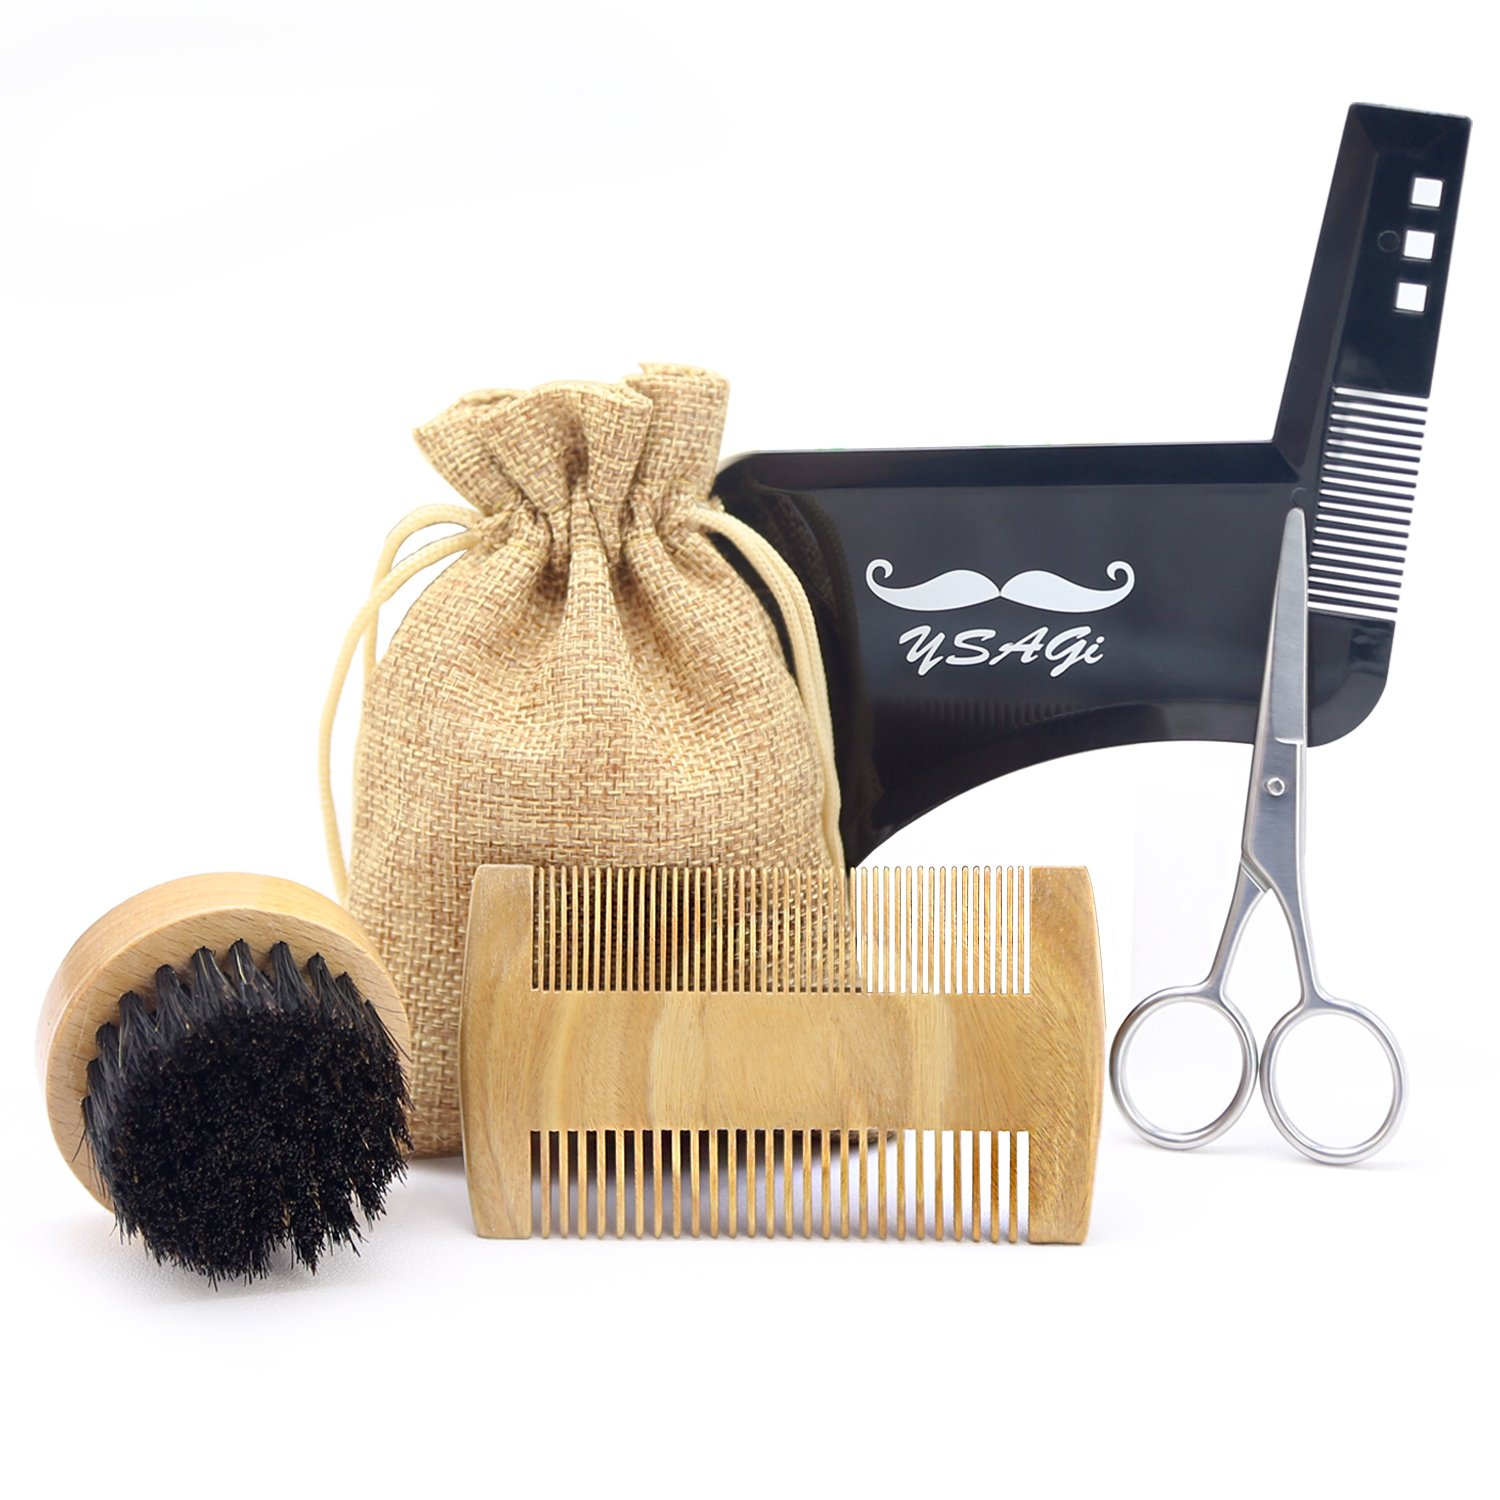 Beard Brush and Comb for Men, Handmade Wooden Comb and Boar Bristle Beard Kit, Men's Facial Hair Style Stencil Tool, Suitable for Dry or Wet Beard (Beard Comb Set) YSAGi